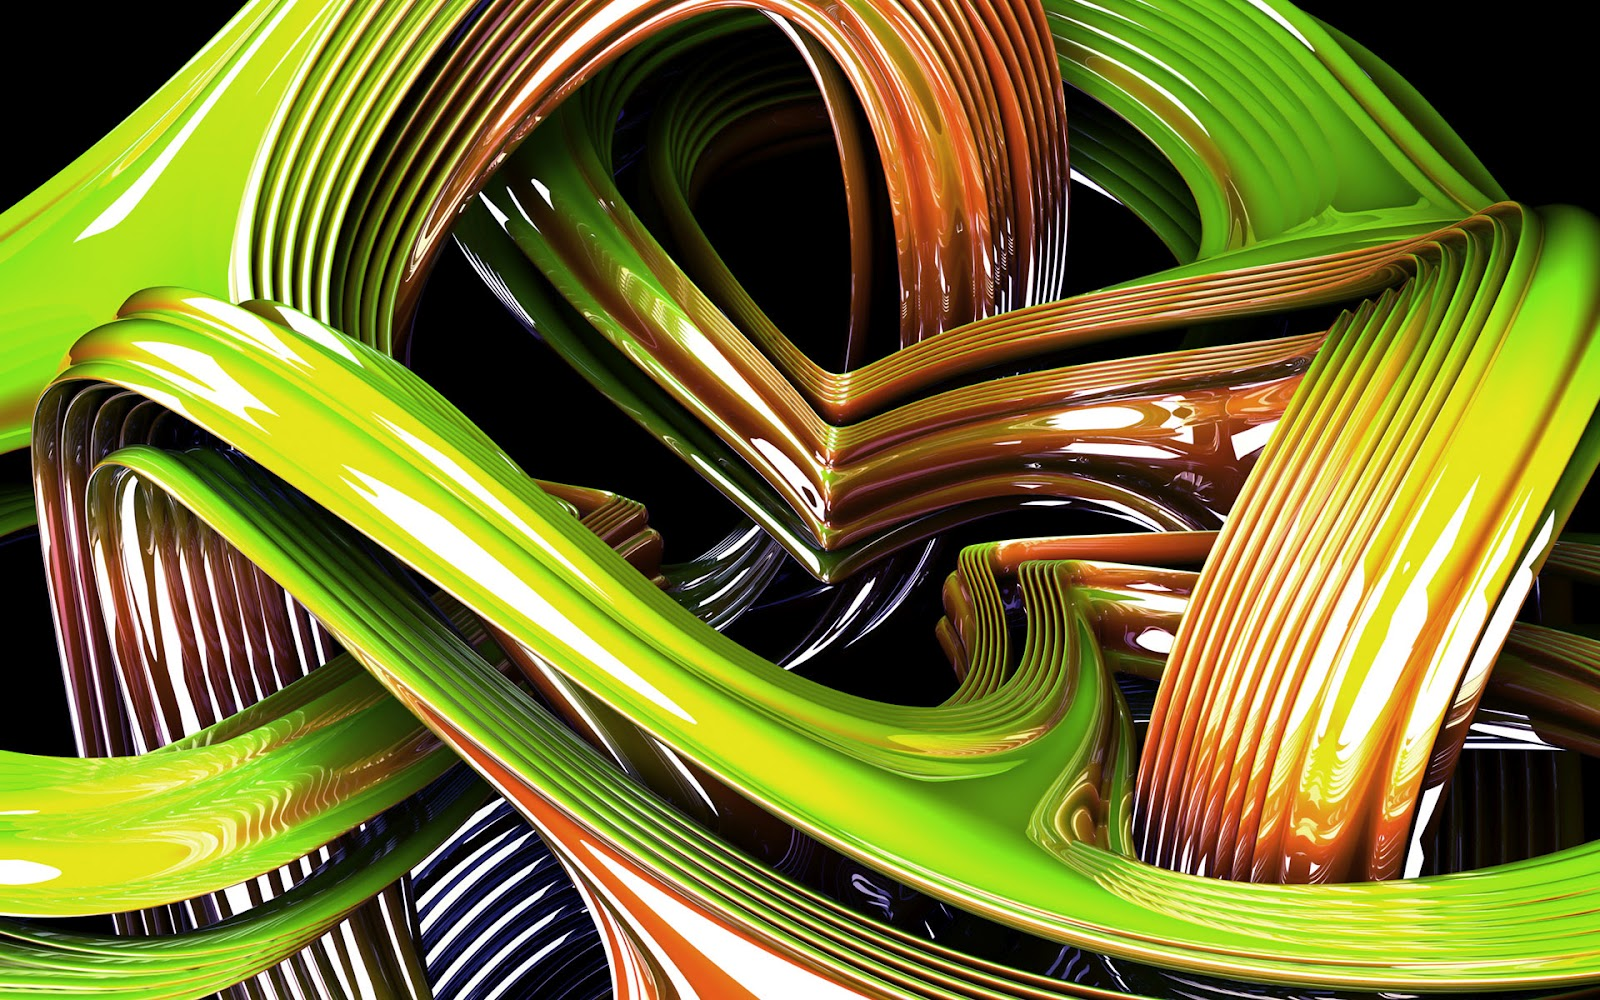 Great Abstract 3D Wallpaper | Abstract Graphic Wallpaper